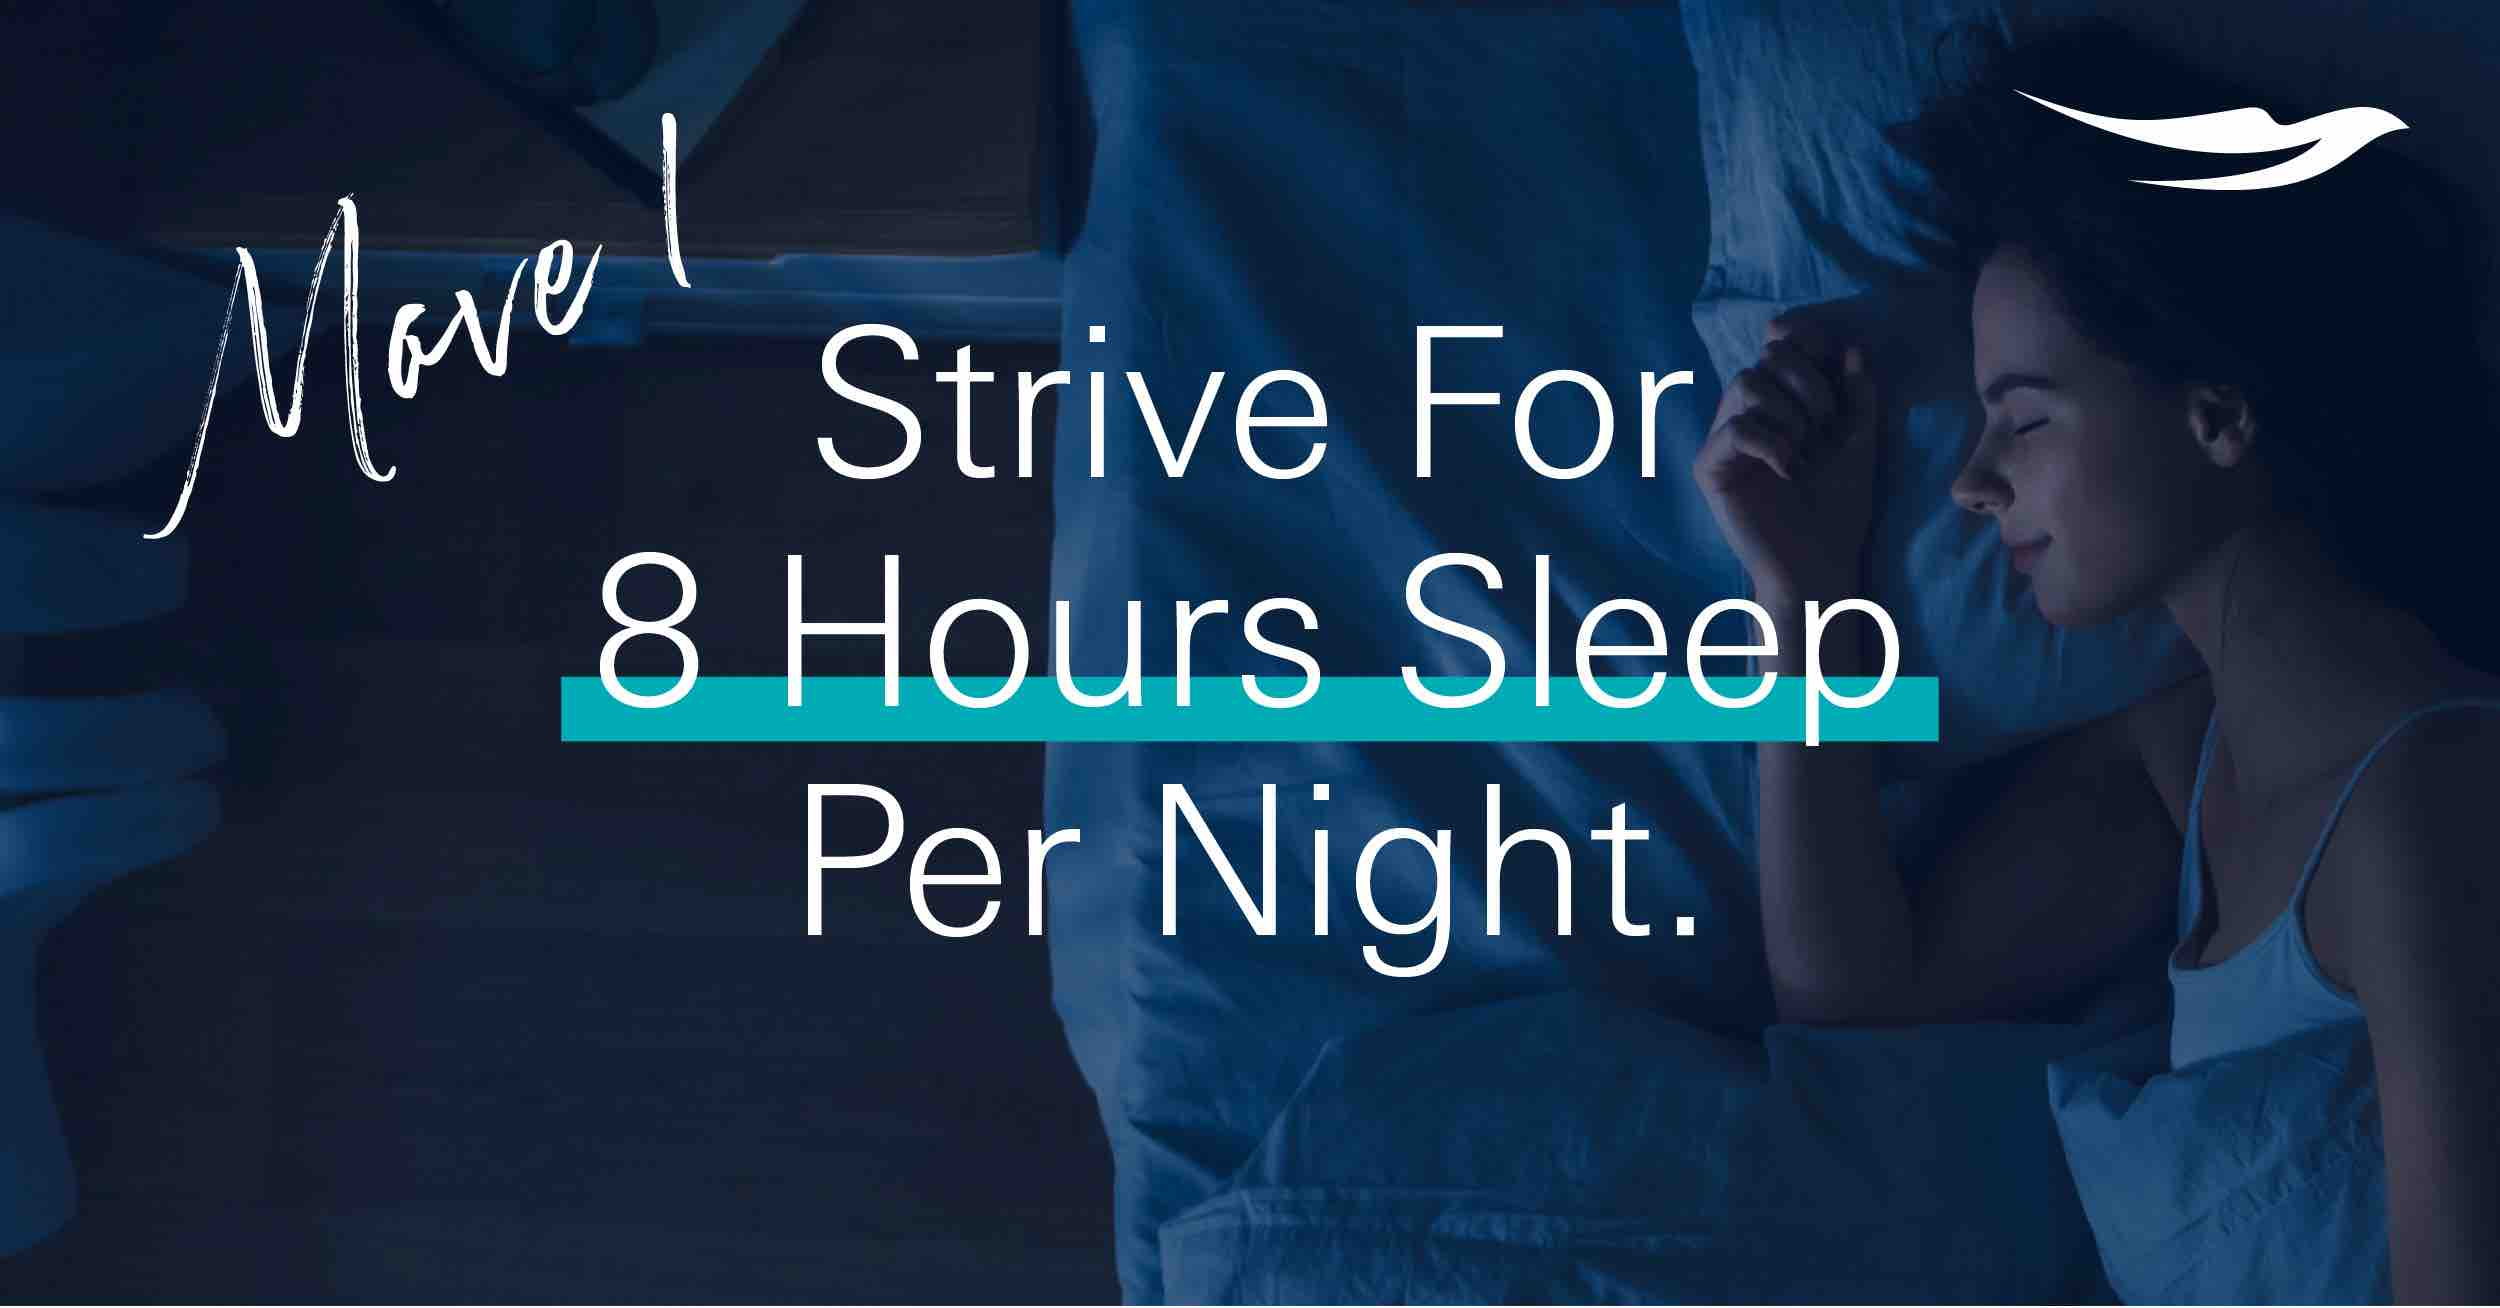 10 moves to Boost Your Productivity in 2021 - 8 hours sleep per night